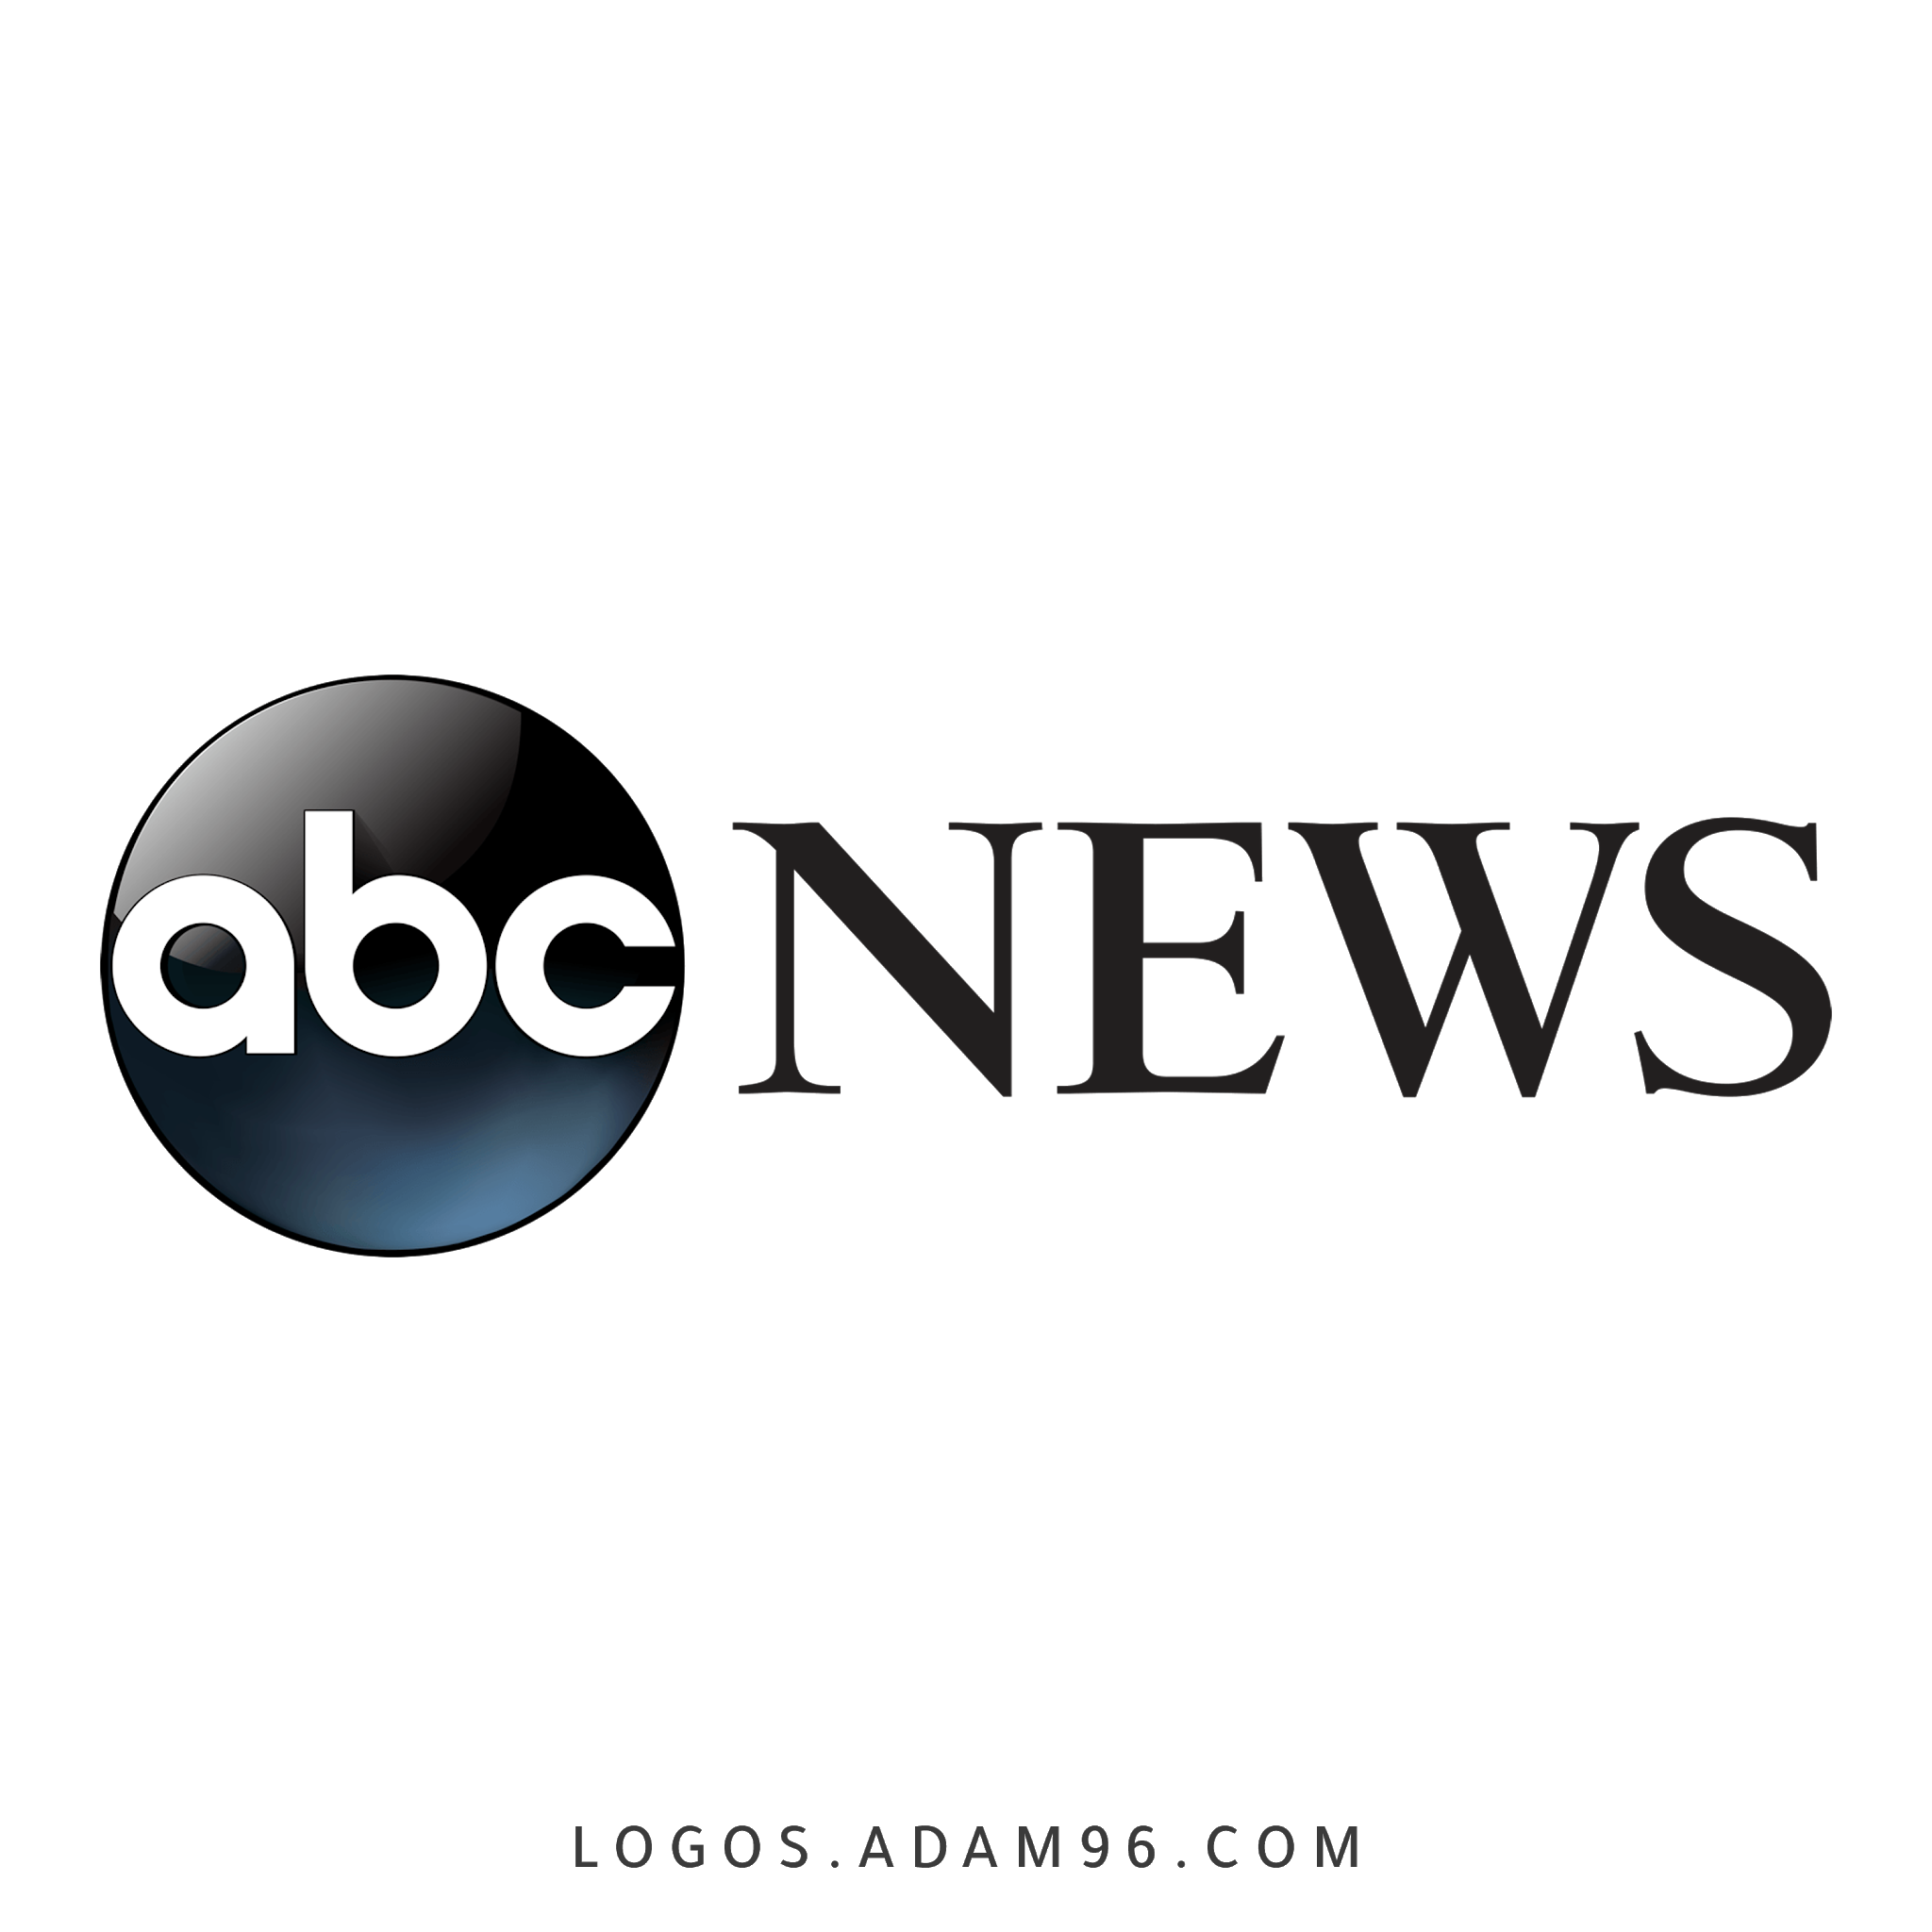 Download Logo ABC News PNG - Free Vector